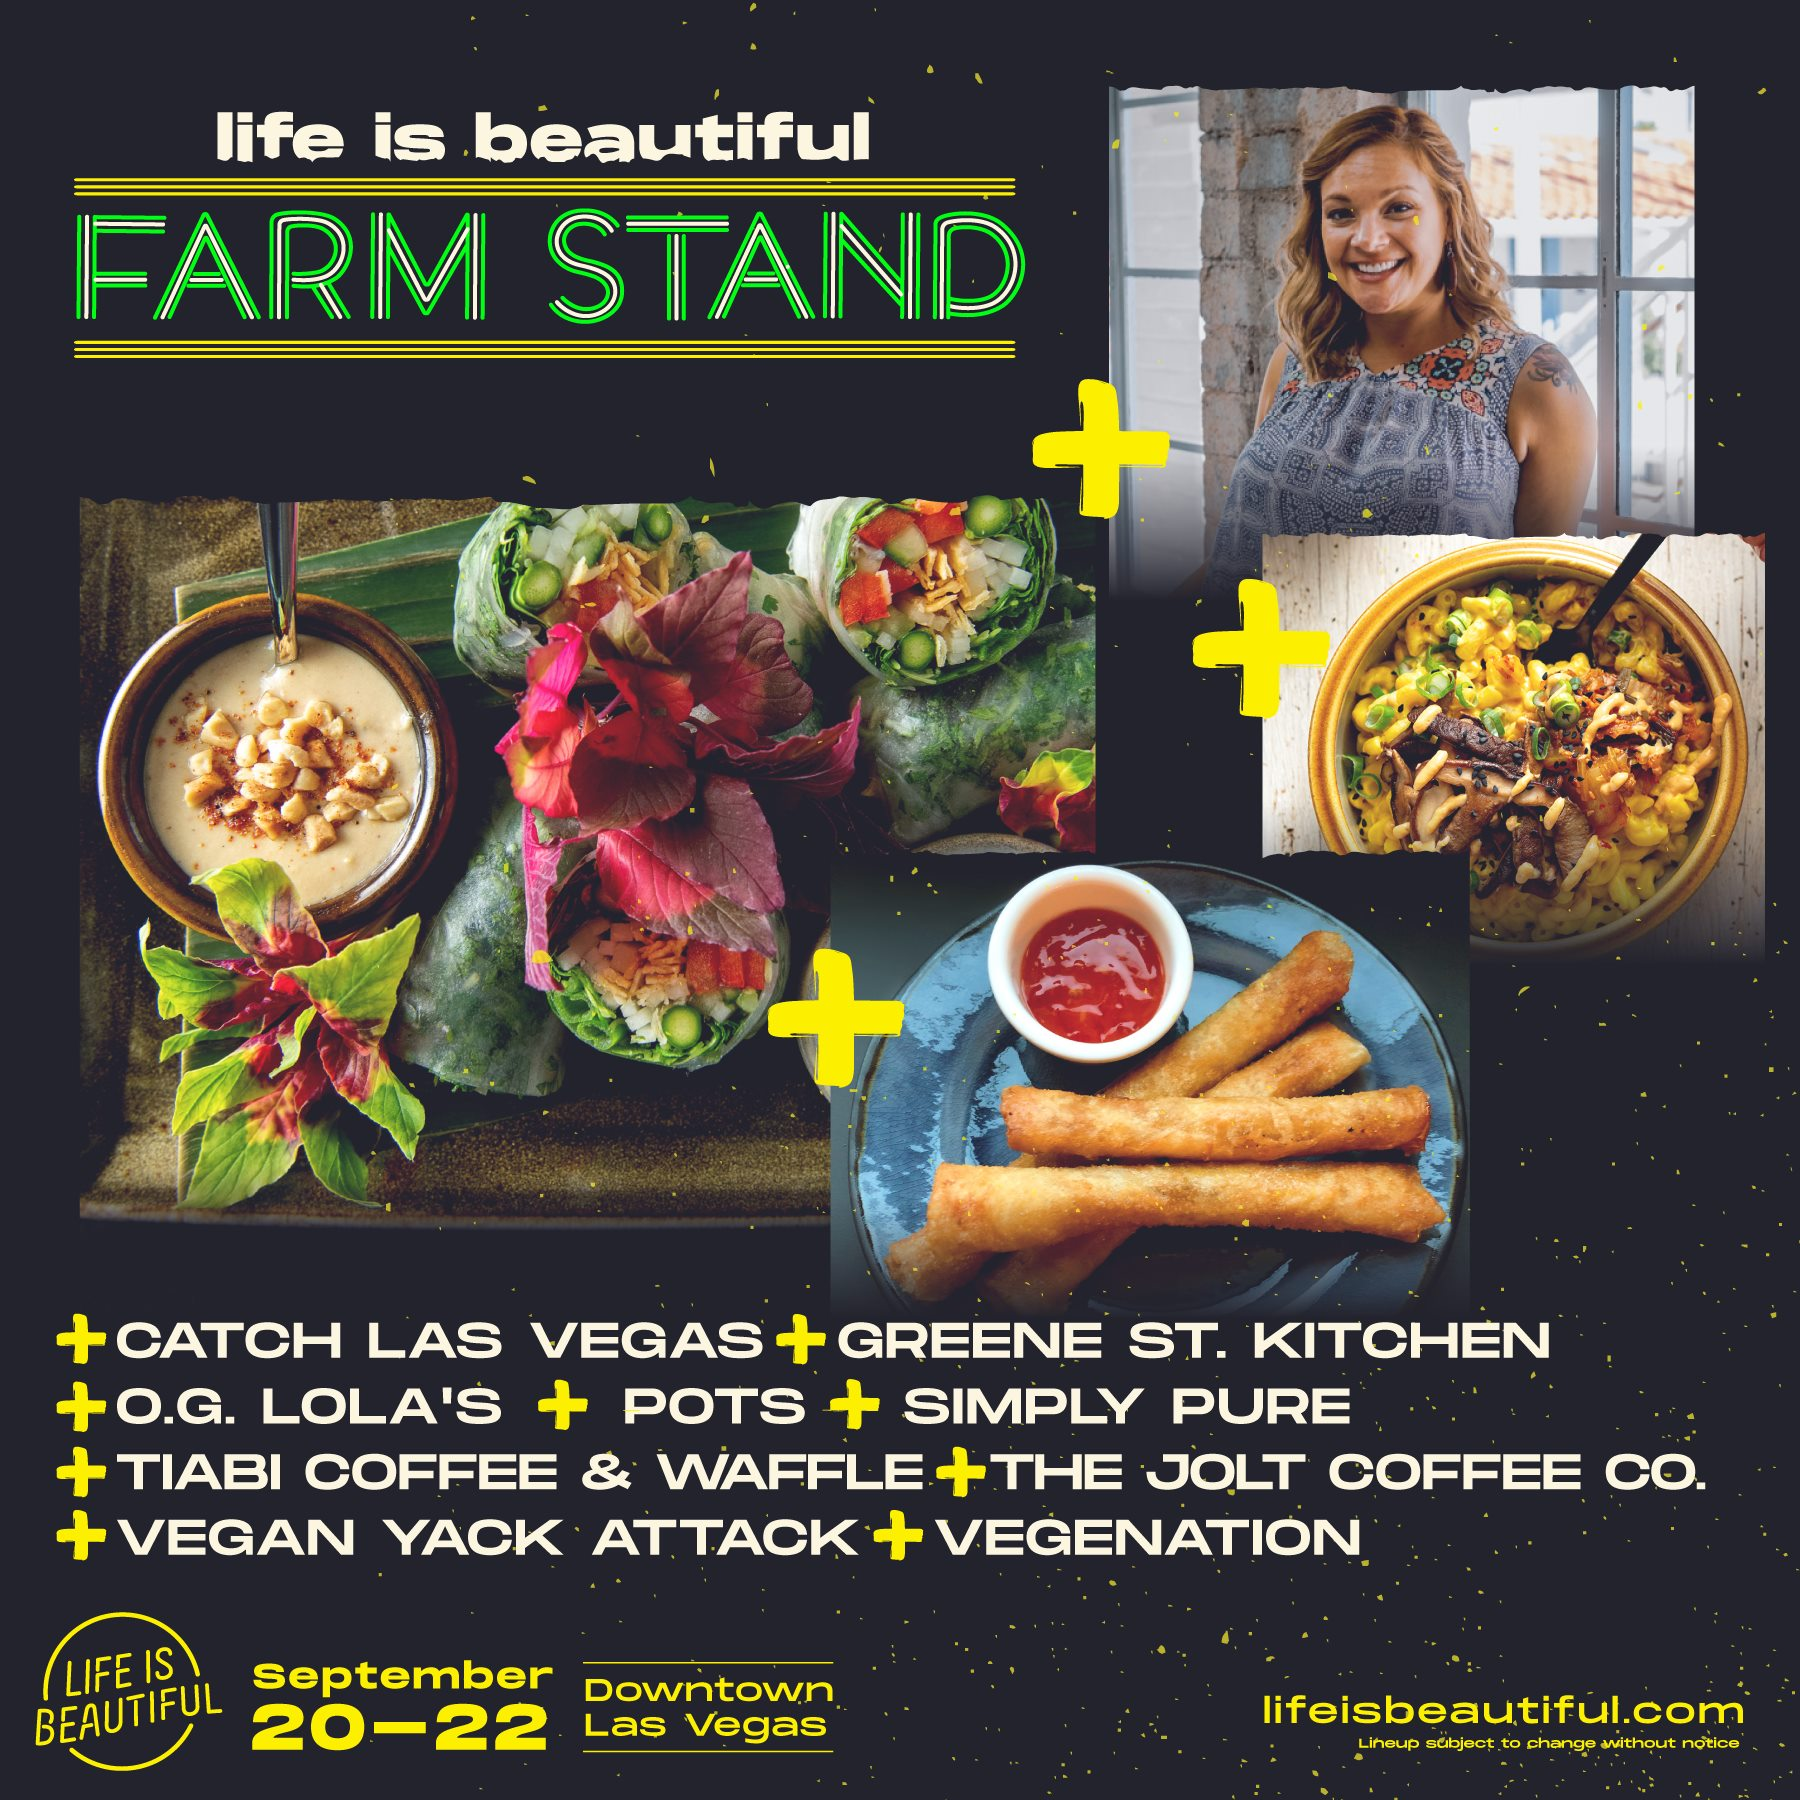 Vegan food guide to Life is Beautiful 2019, including The Farm Stand by Vegans, Baby